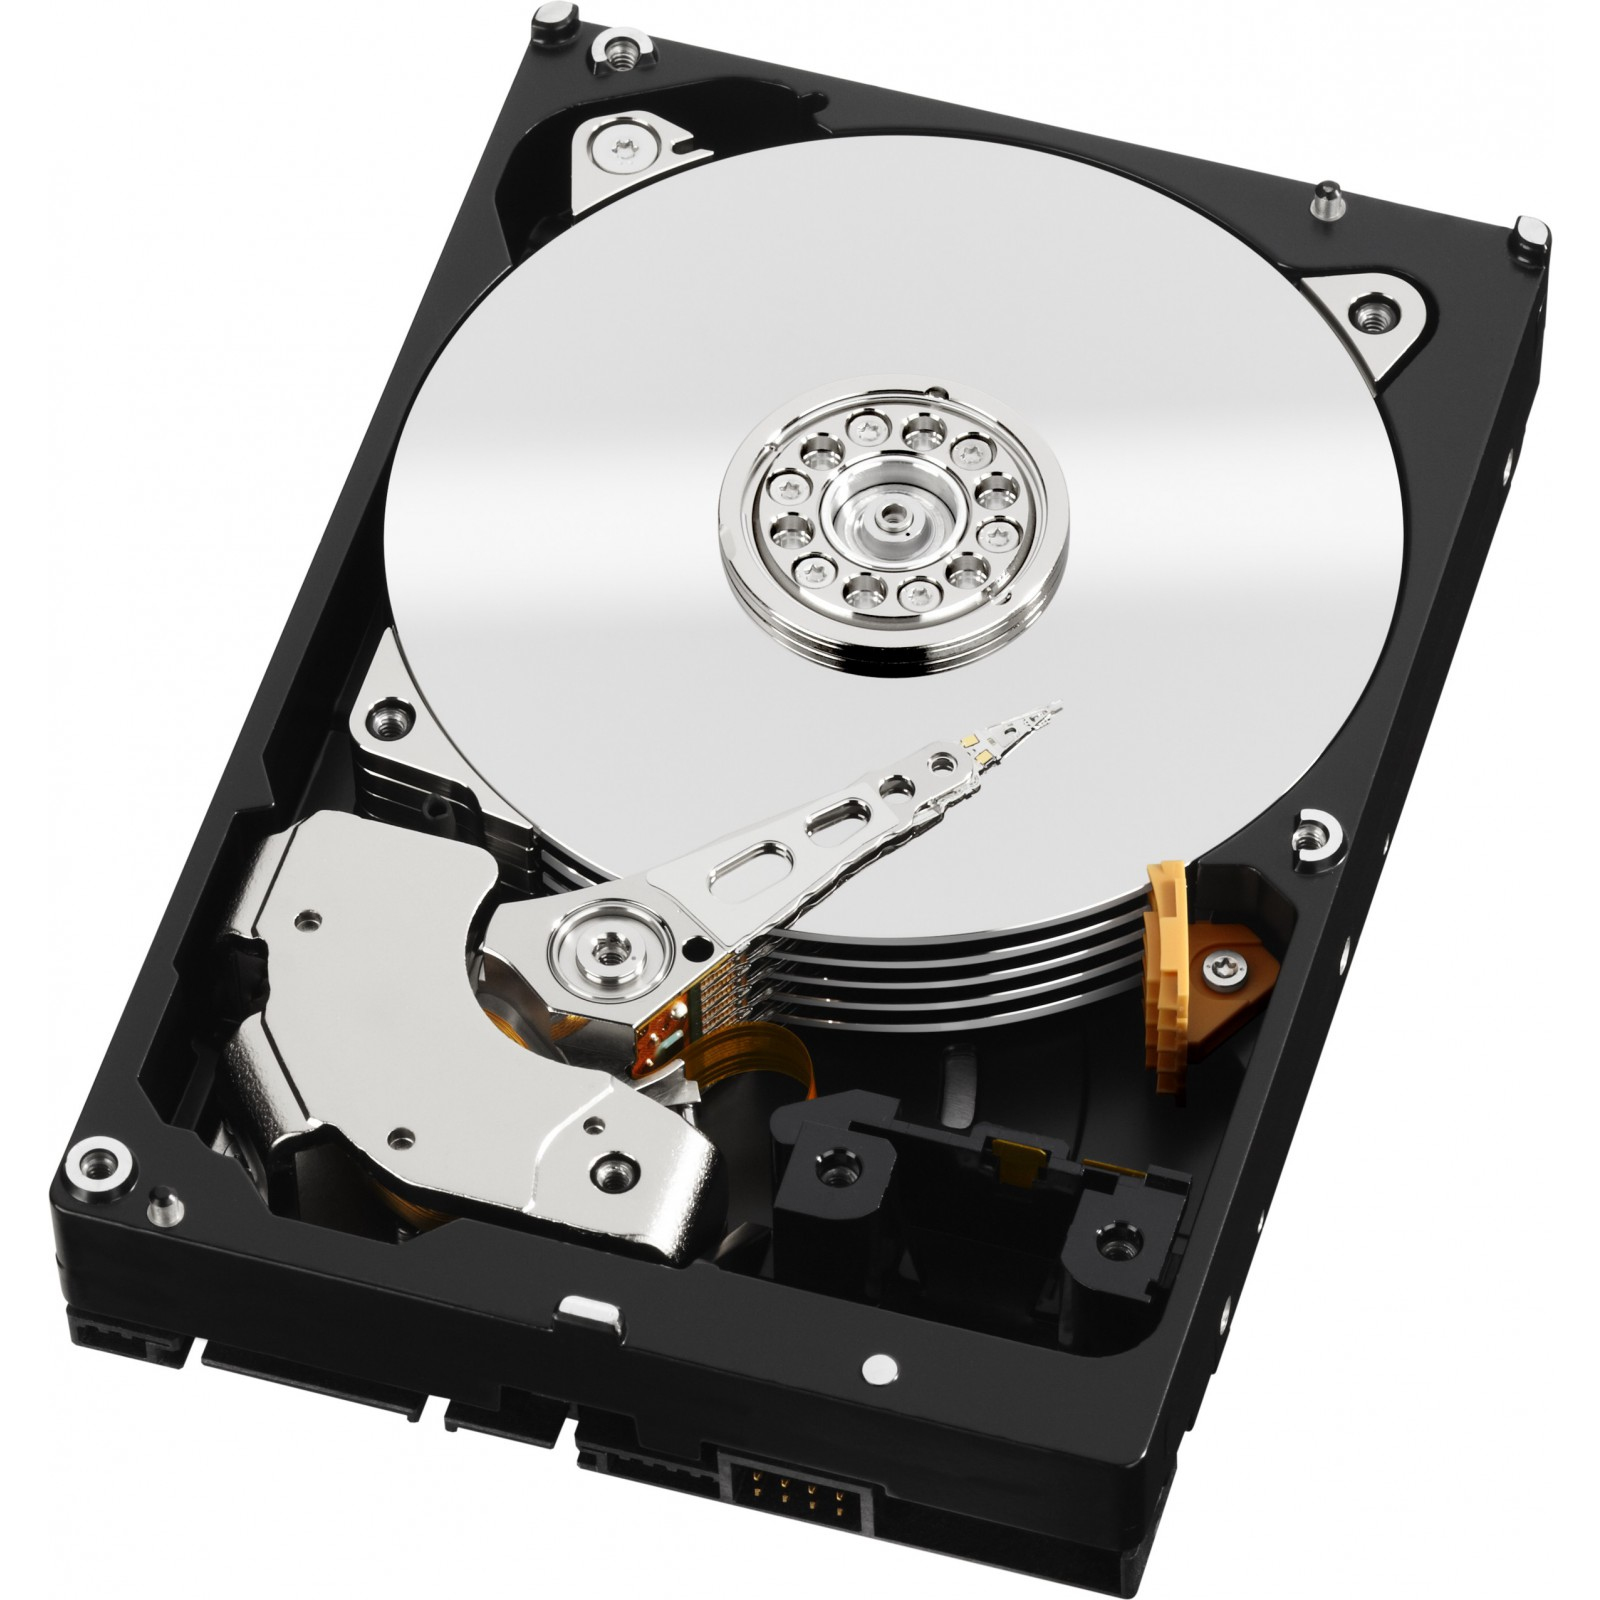 WESTERN DIGITAL CAVIAR CE 160GB SERIAL ATA II INTERNAL HARD DRIVE REFURBISHED